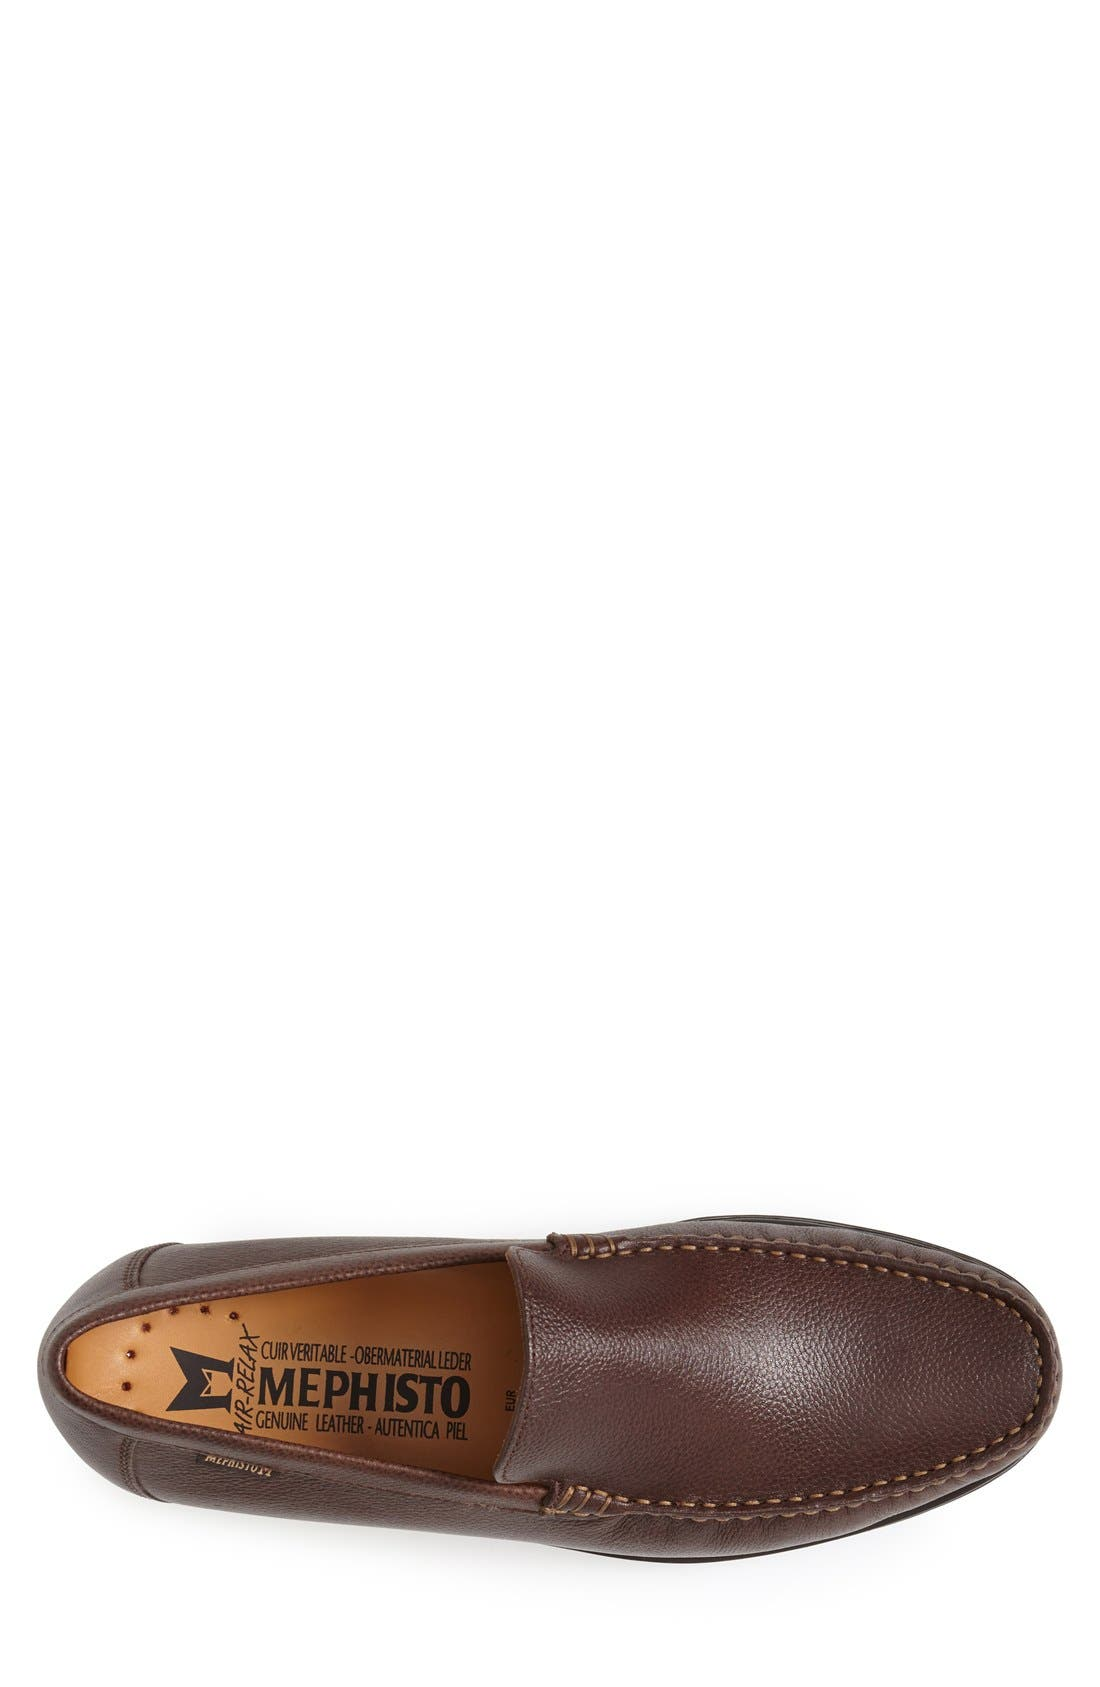 'Henri' Loafer,                             Alternate thumbnail 3, color,                             CHESTNUT LEATHER